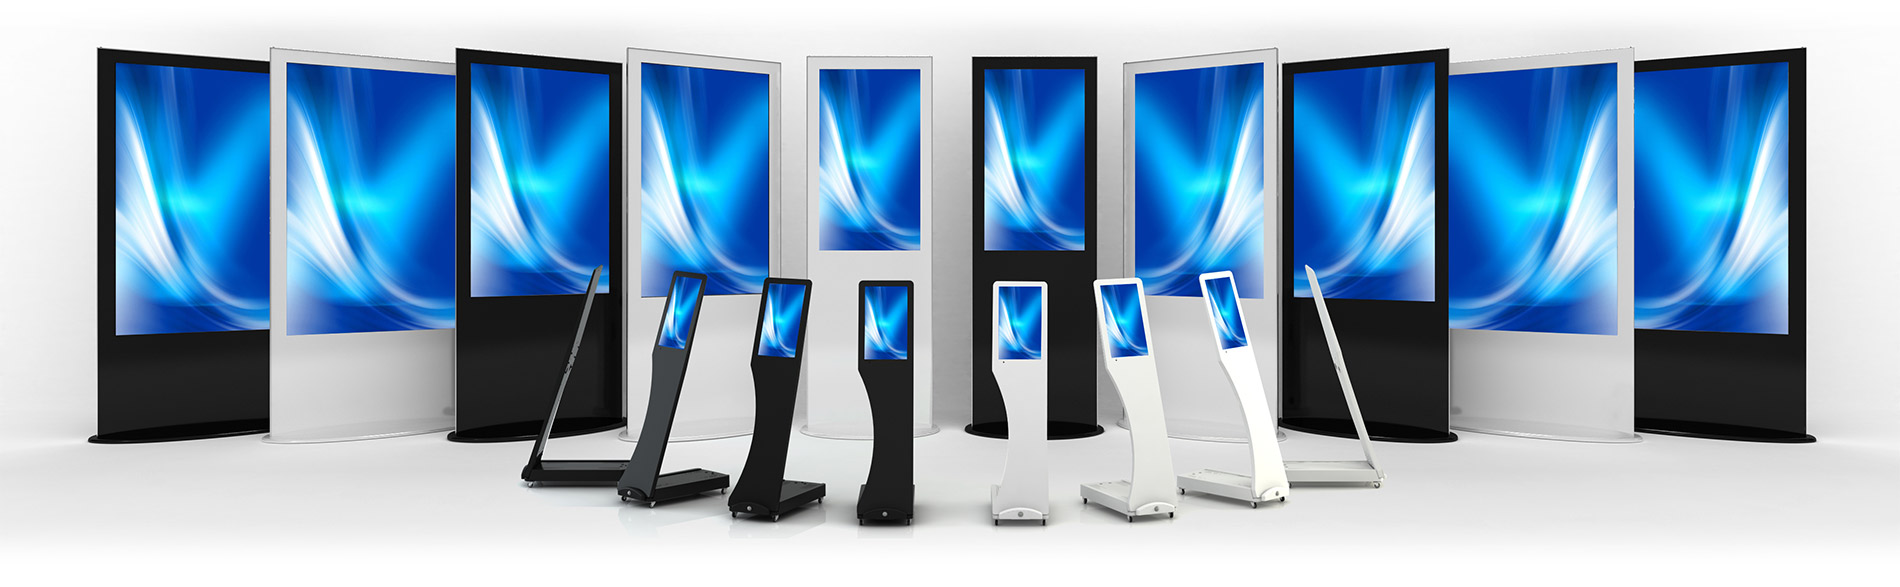 Interactive Digital Kiosks Products